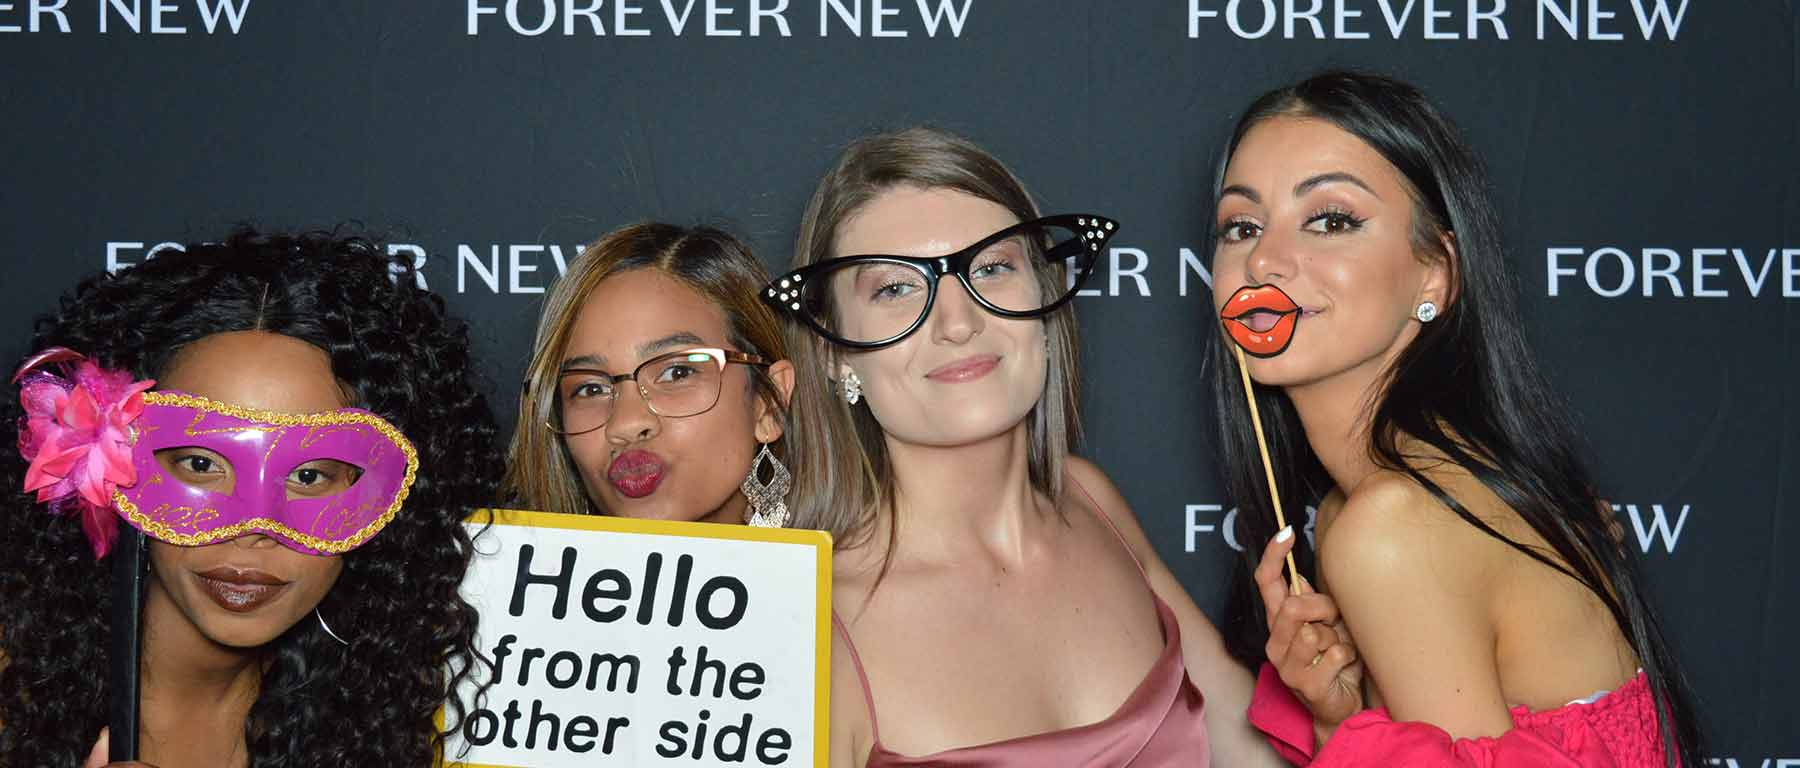 ladies posing with photo booth props